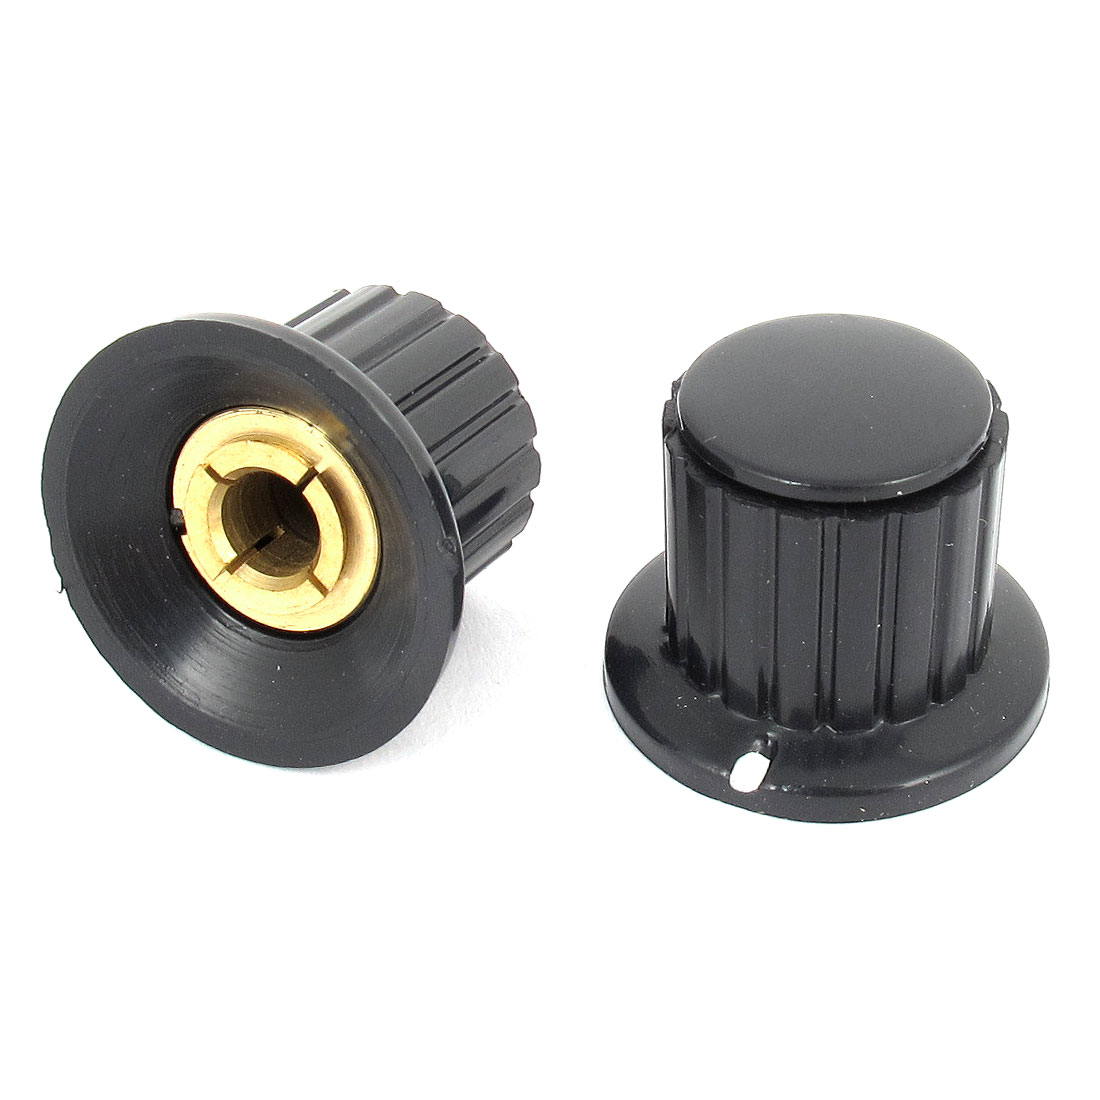 2 Pcs Black Ribbed Grip 6mm Split Shaft Potentiometer Control Knobs